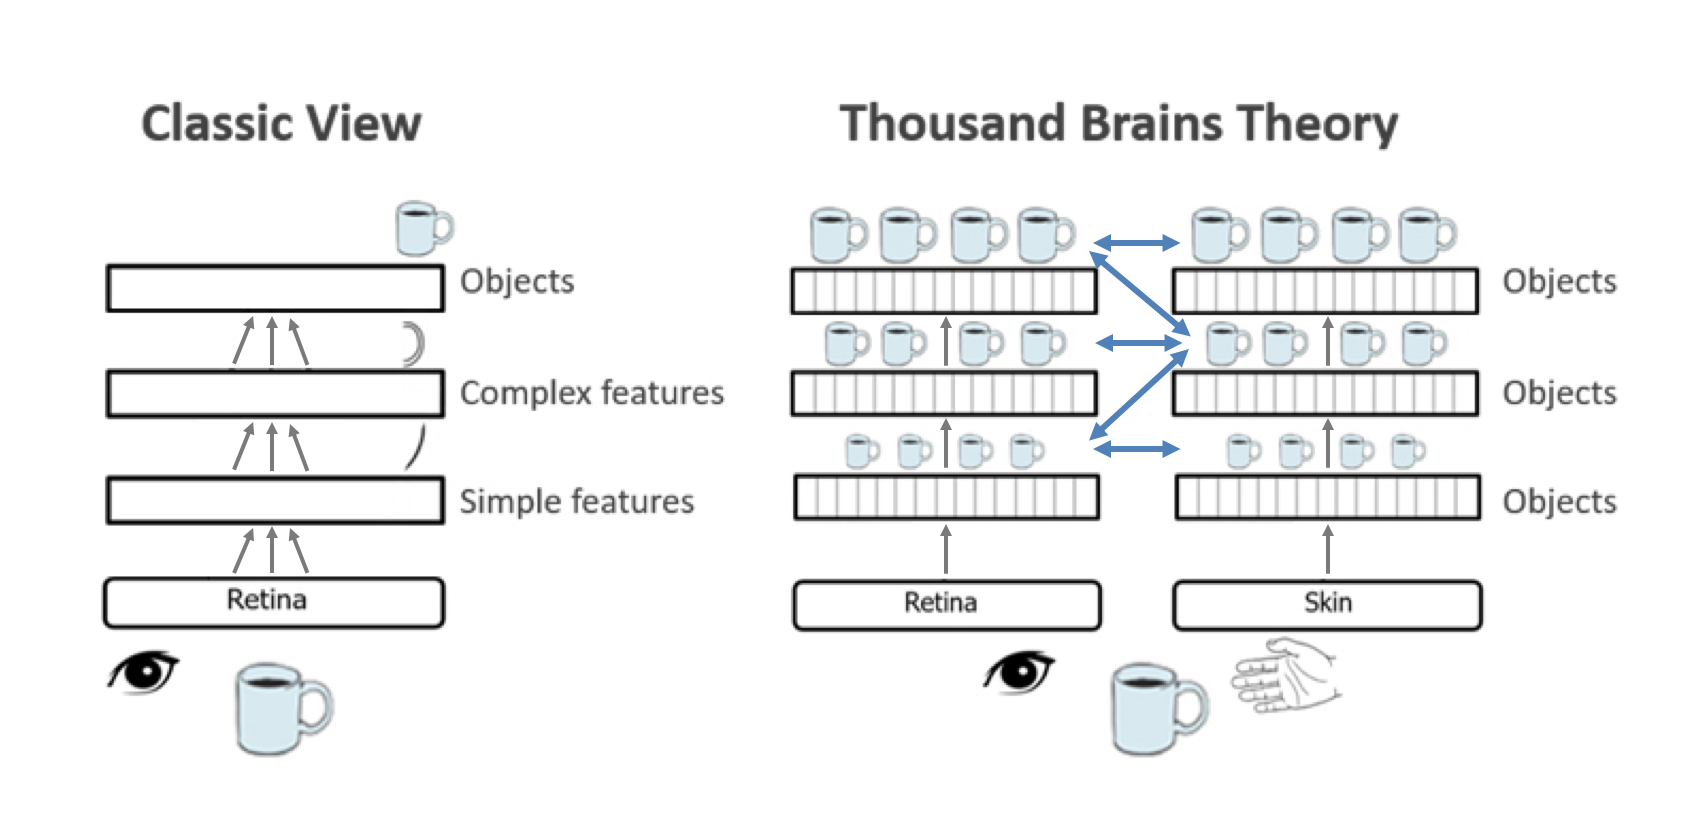 Classic Hierarchy View vs. Thousand Brains